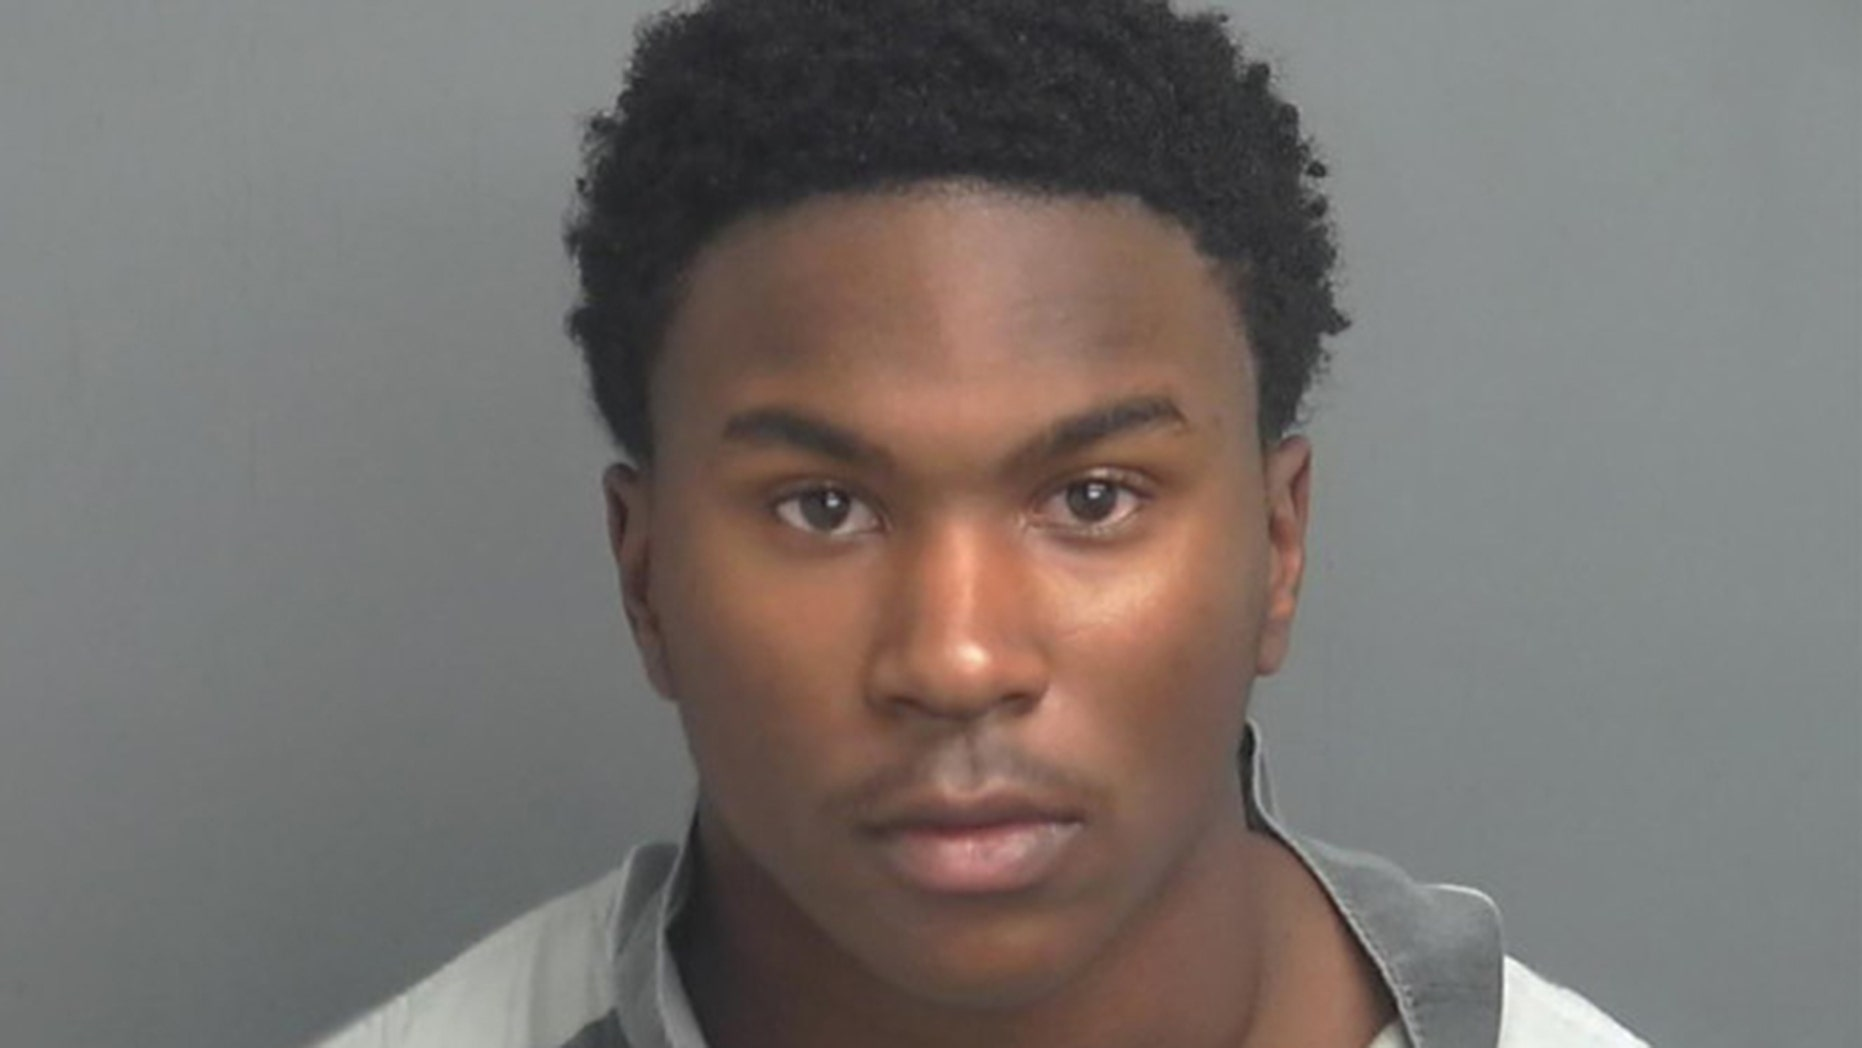 Terrell Morgan, 17, is accused of breaking into a Texas home and watching a mother and daughter while they slept.